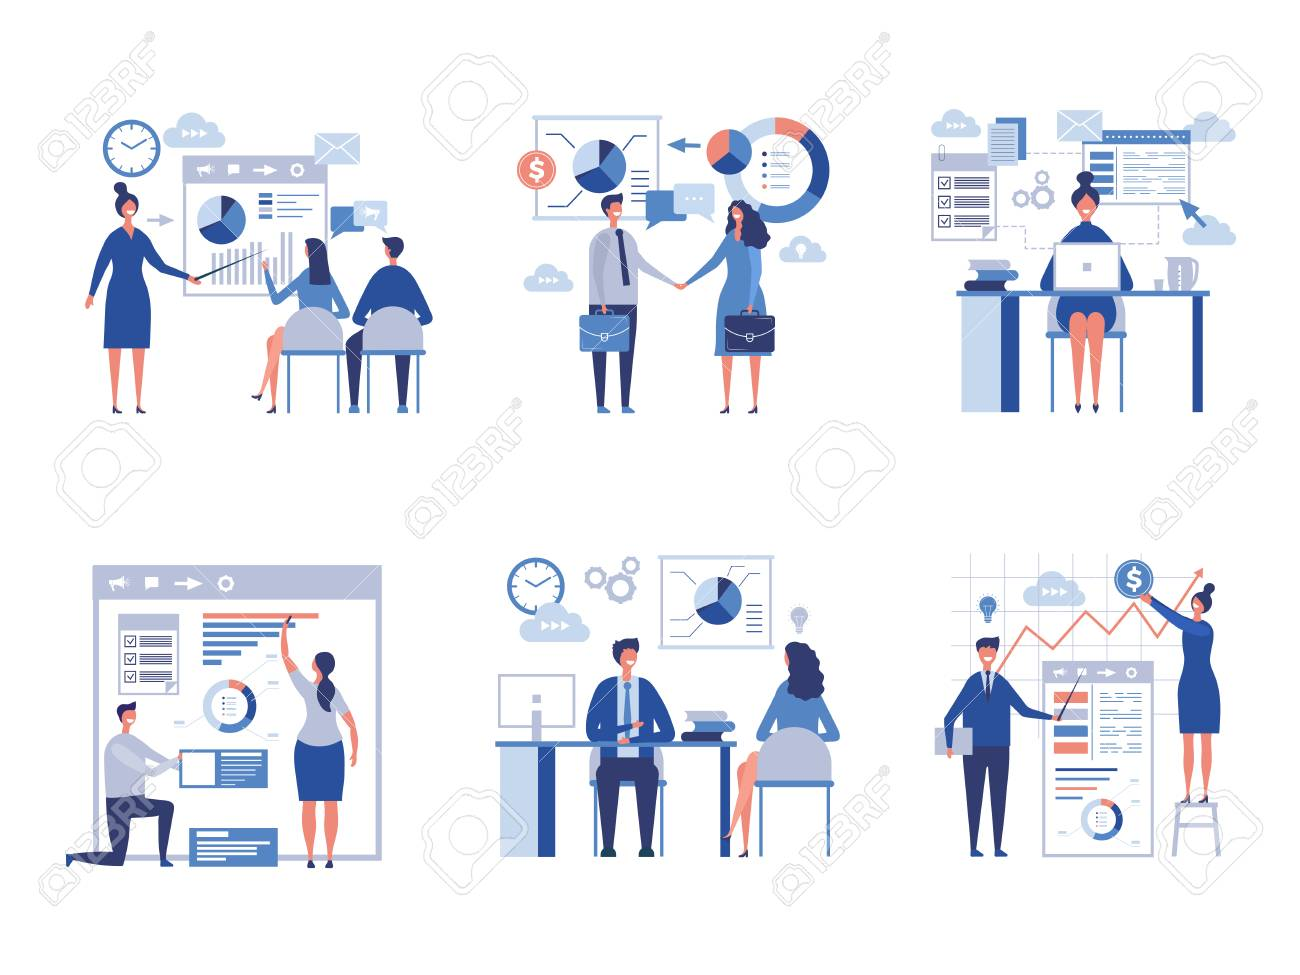 Business scene collection. Oversize abstract office characters managers directors crowd team worked vector businessmen pictures. Office employee, worker teamwork, presentation charts illustration - 113946770